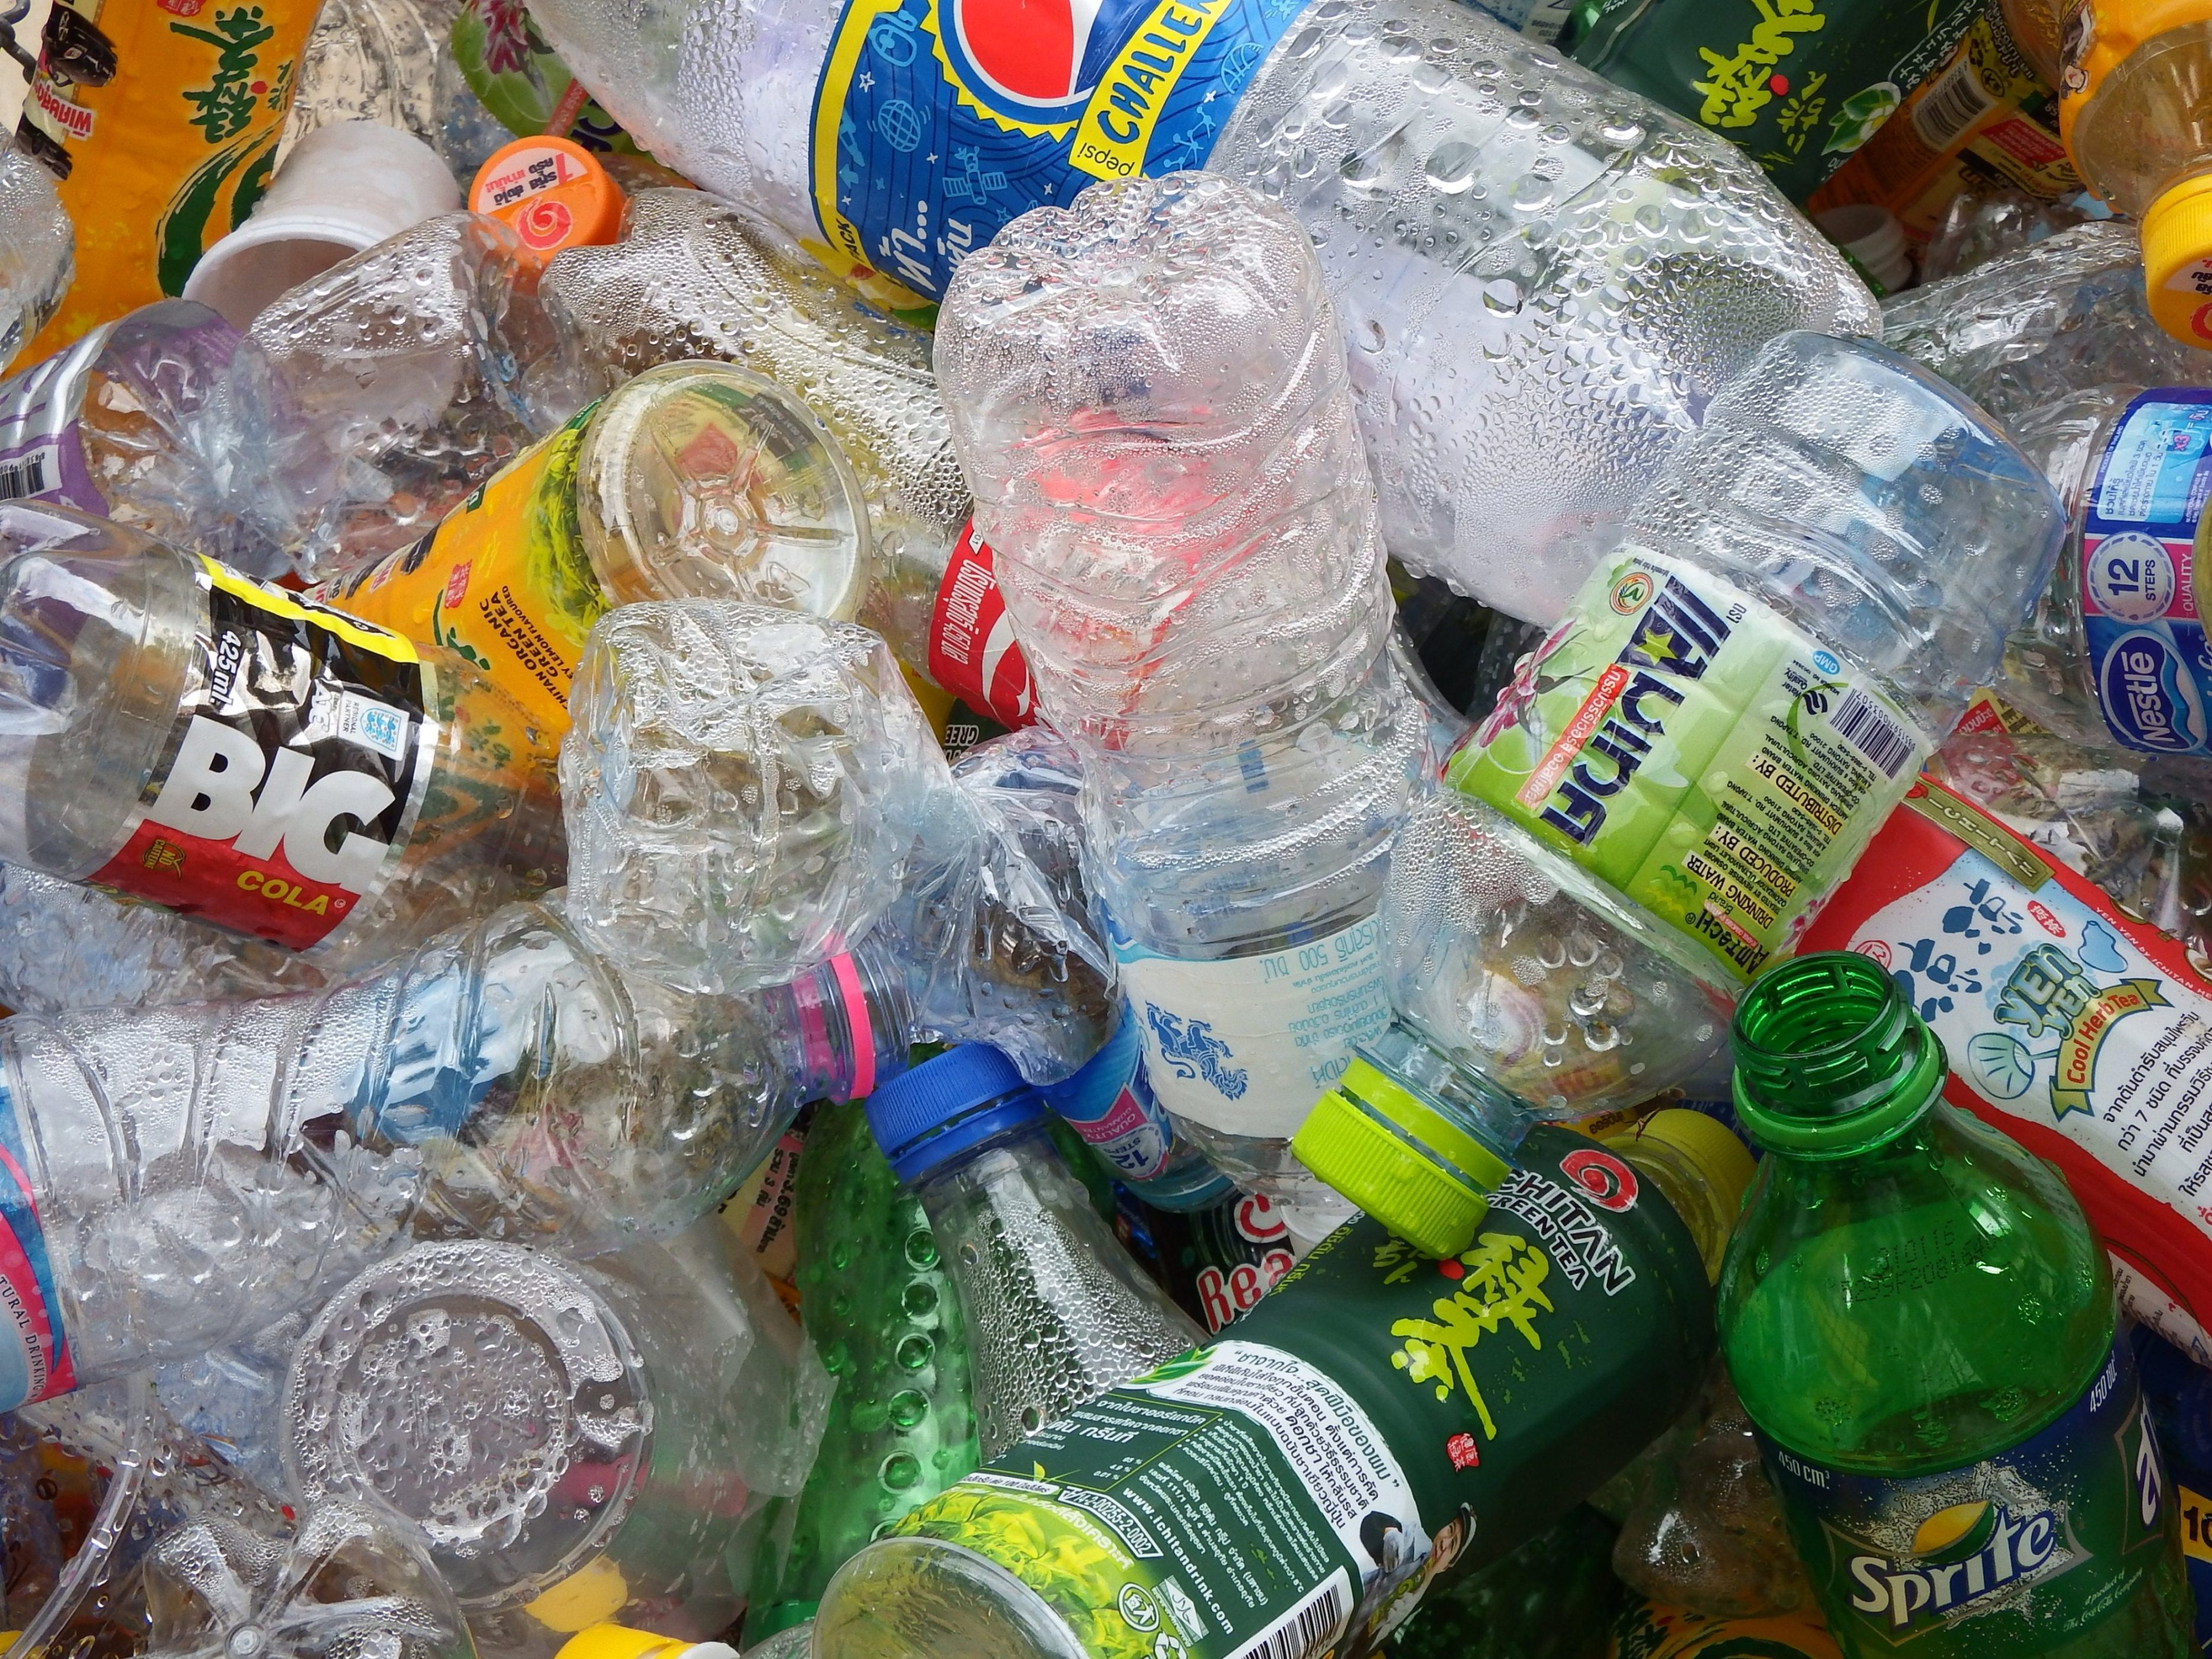 Free photo Recycled Plastic Bottles recycle plastic recycled